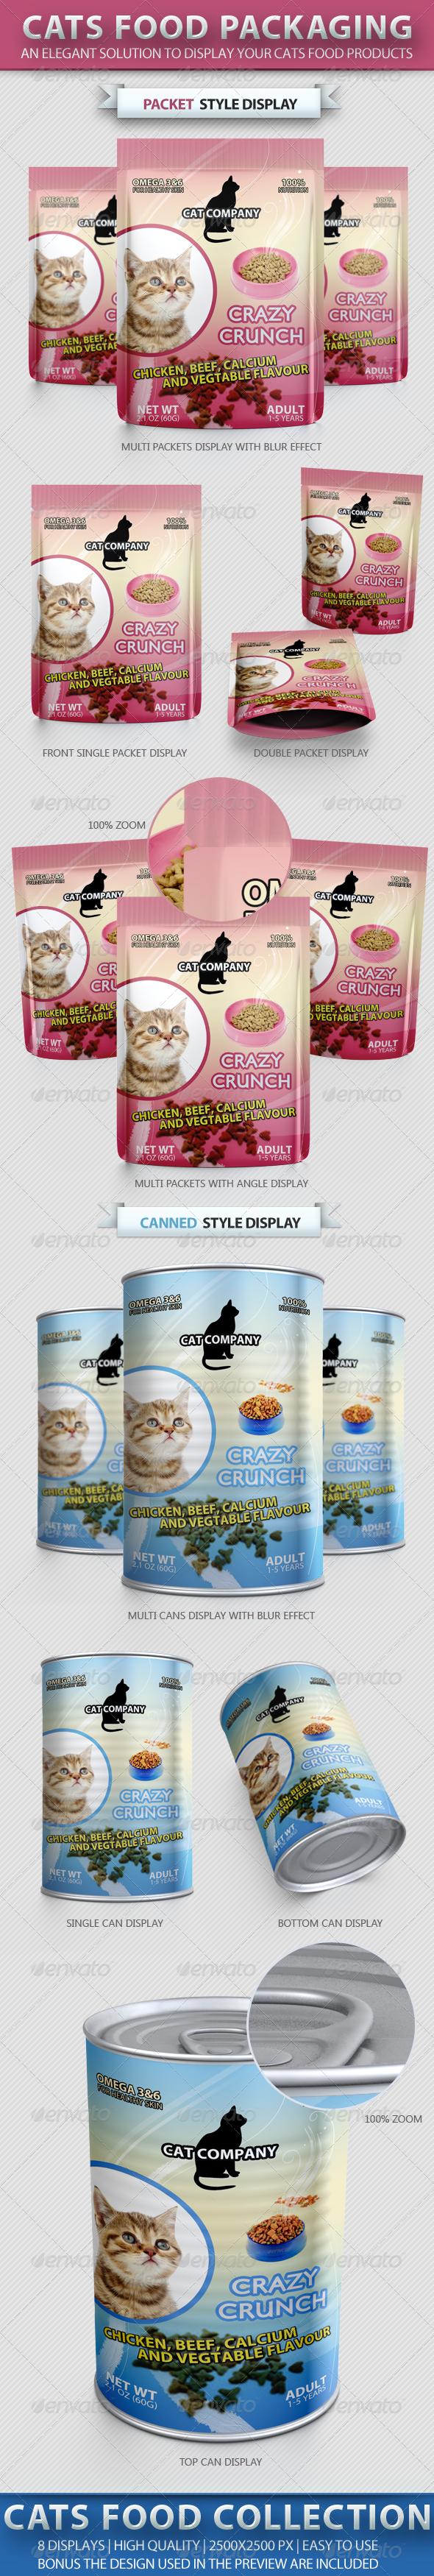 Cats Food Packaging Mock-up - Food and Drink Packaging